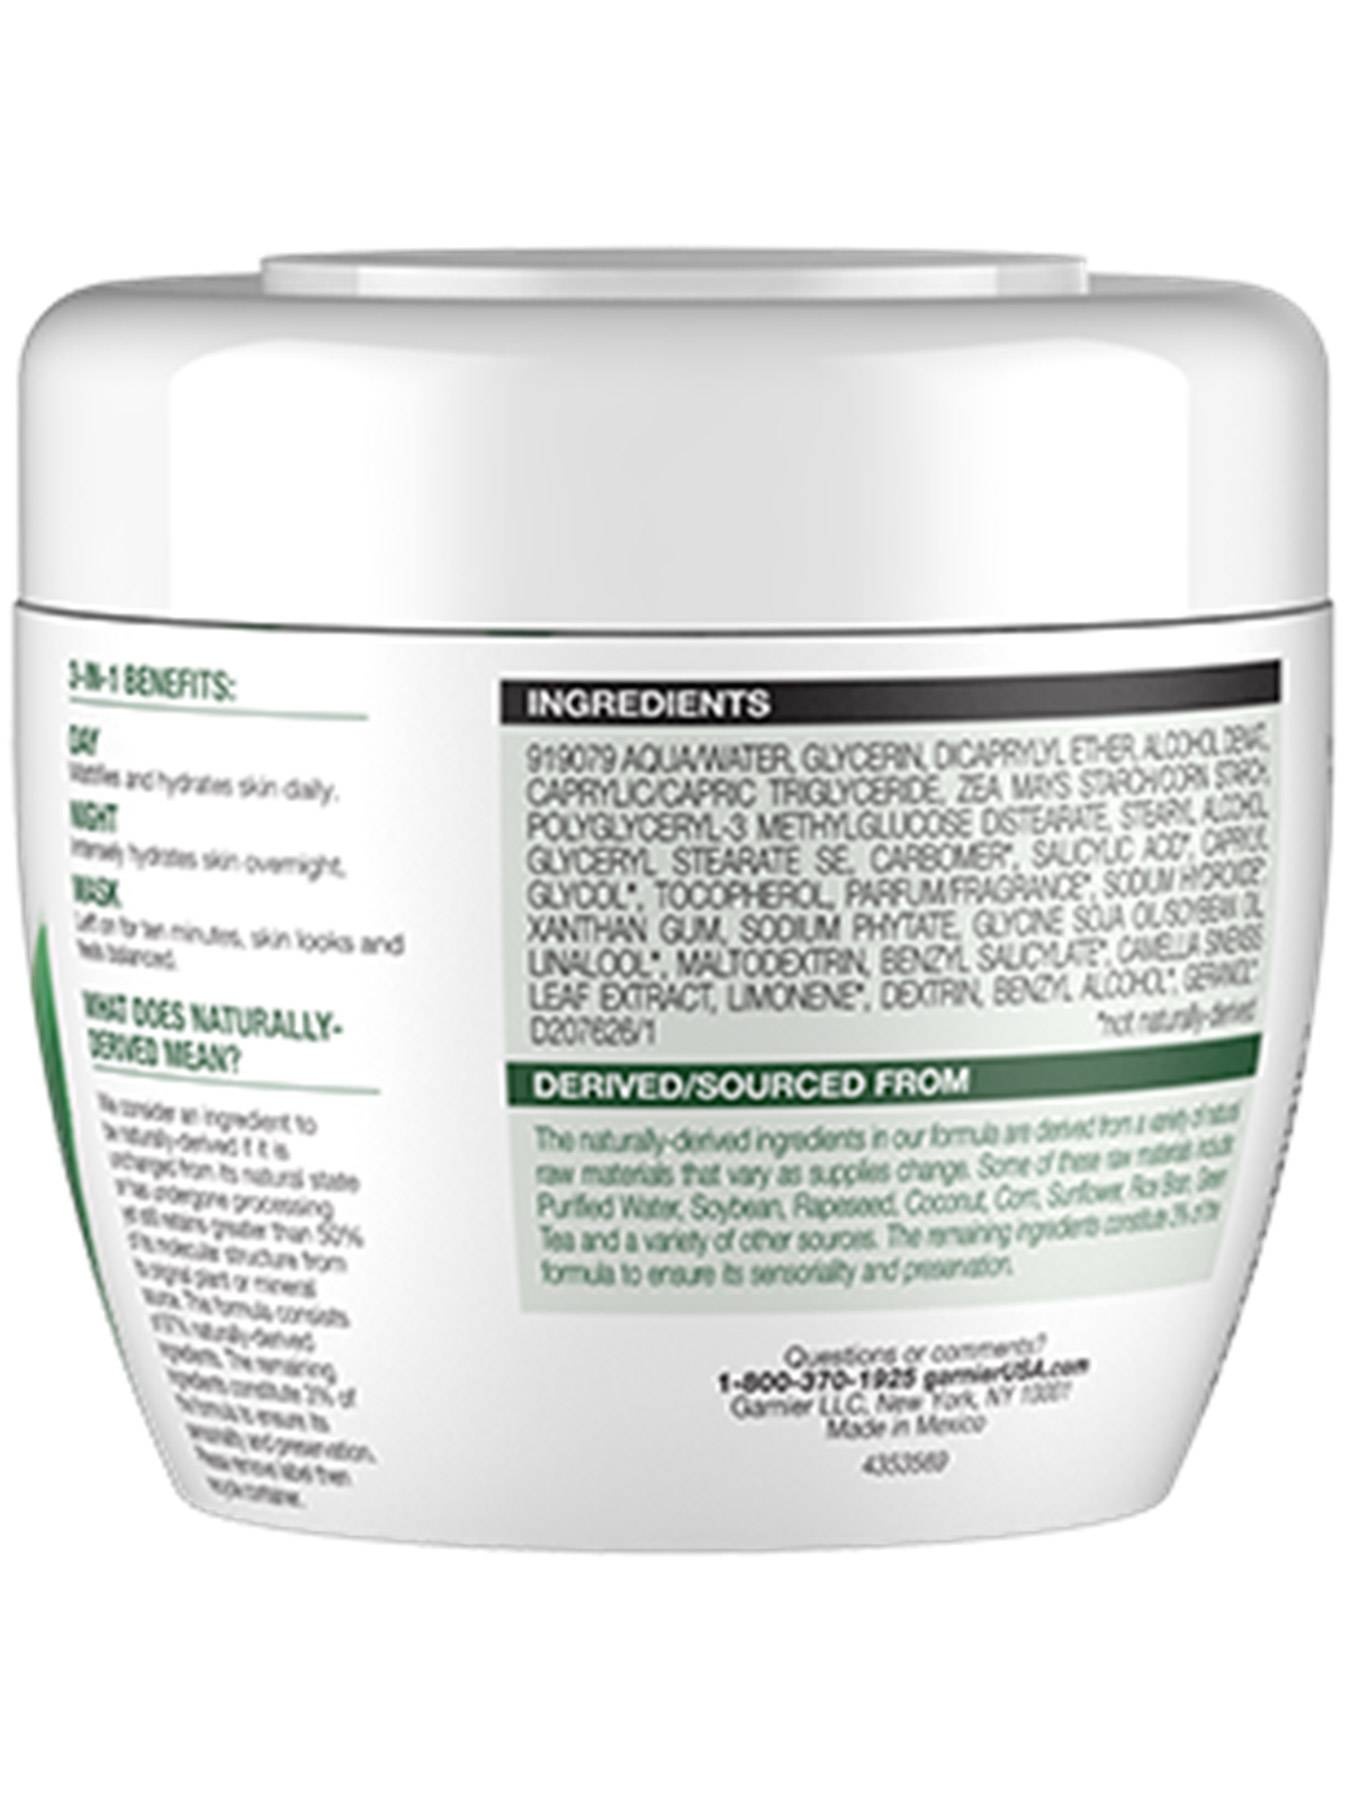 Garnier SkinActive Balancing 3-in-1 Face Moisturizer with Green Tea - 3-in-1 Moisturizer Mask